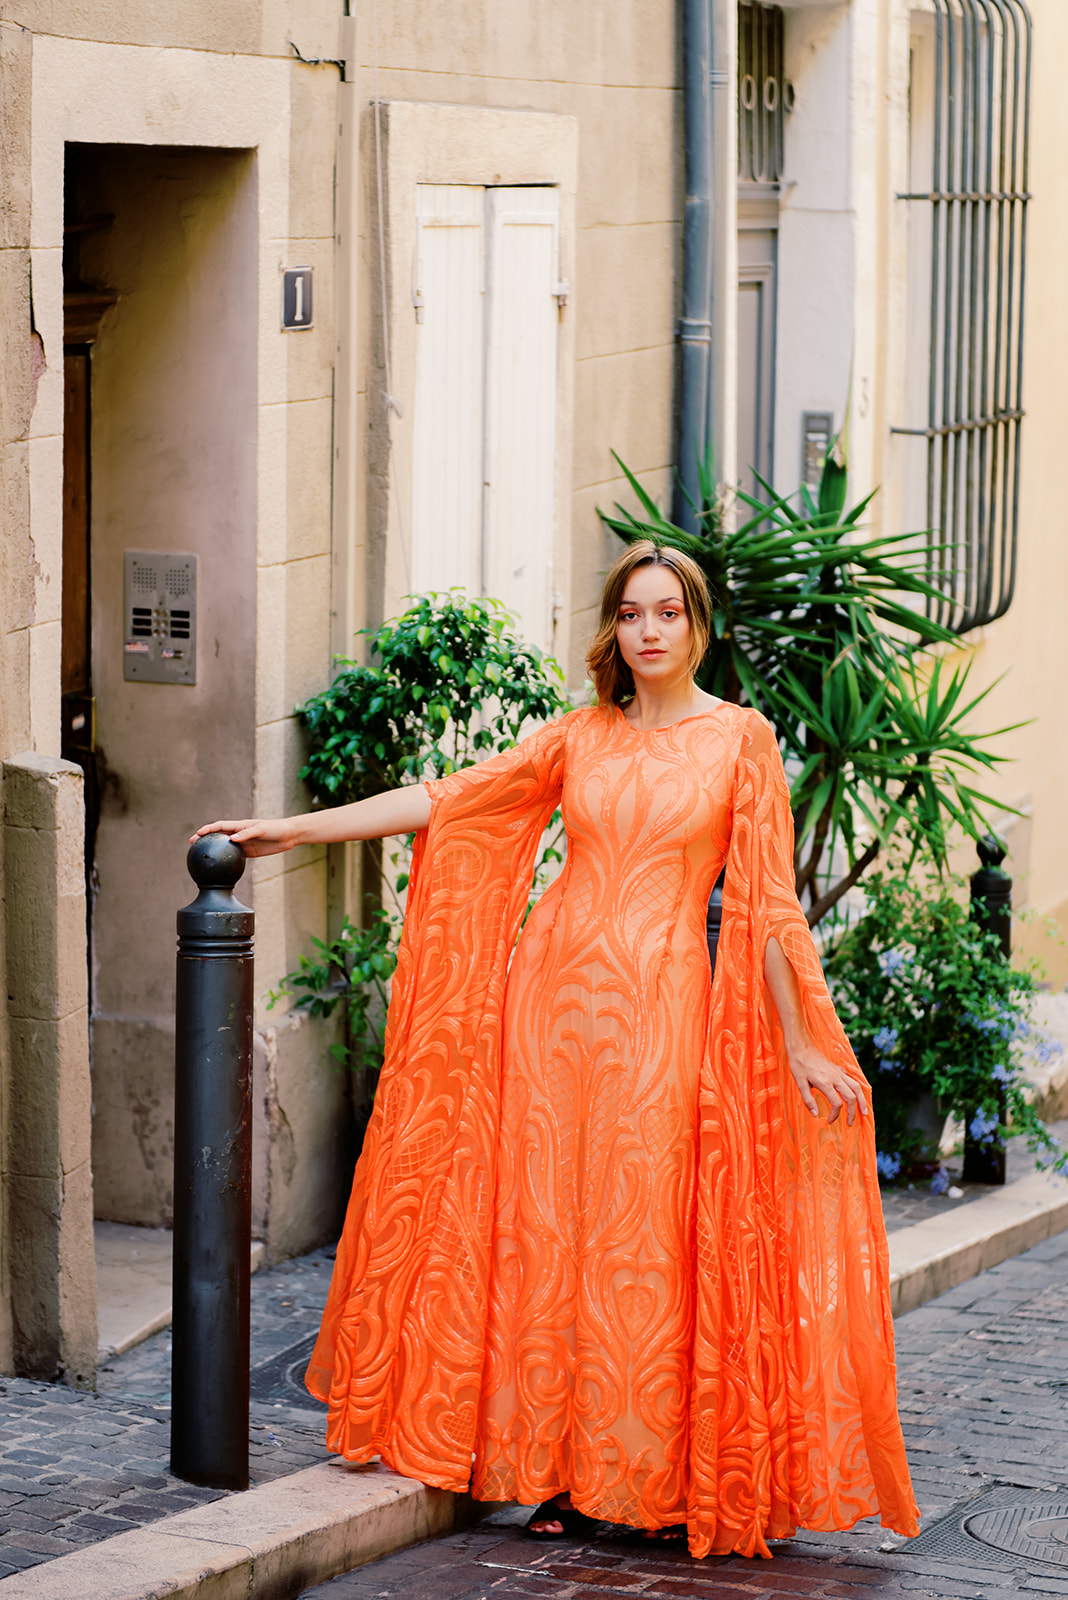 The Fashion Girl's Guide to France in Chic Evening Style